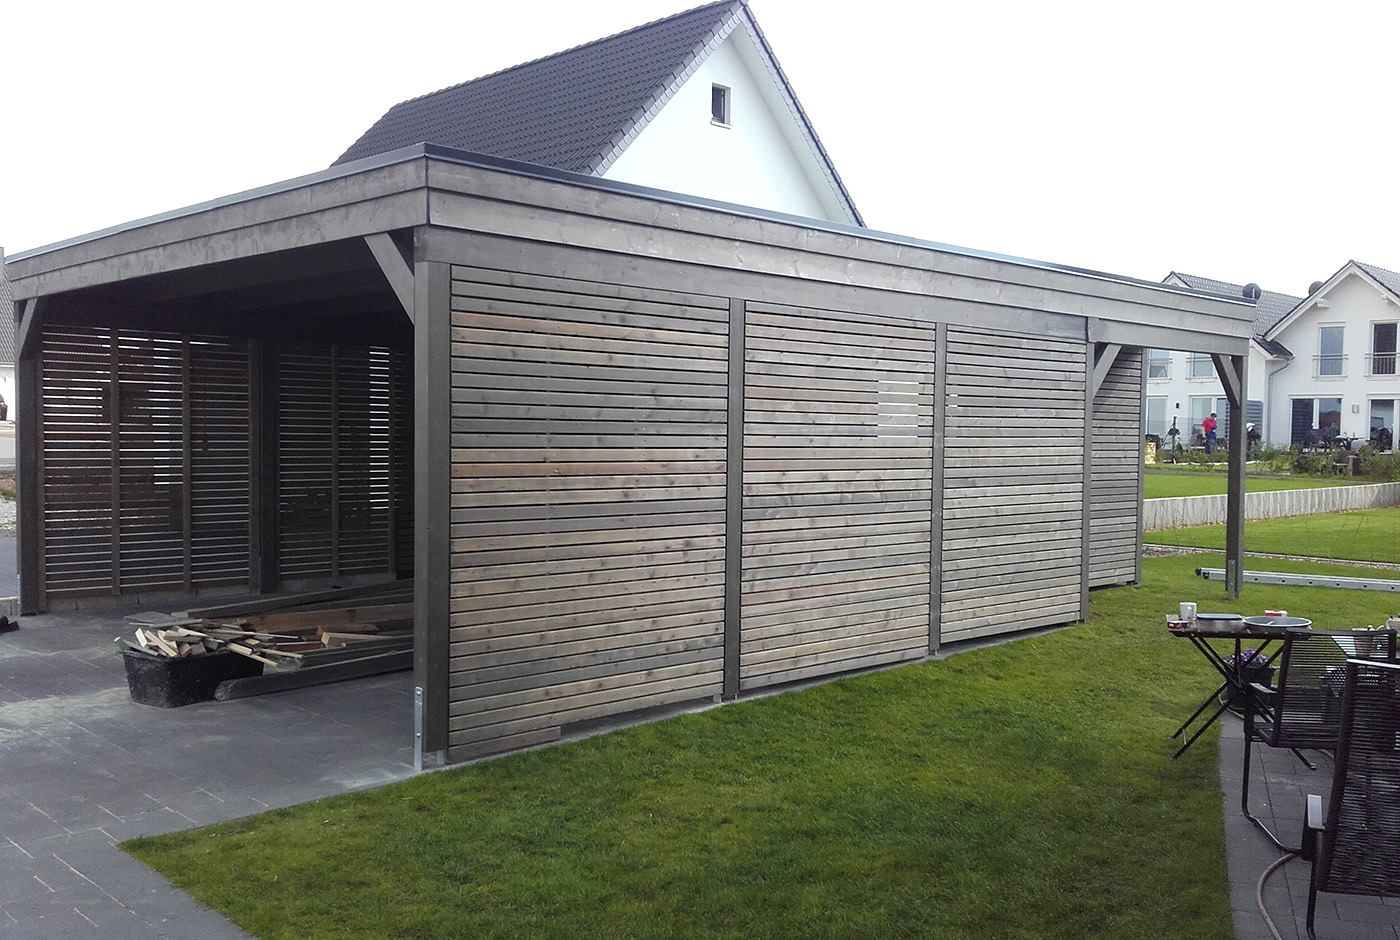 Carport Abverkauf Rundholz Carport Top Berdachung With Rundholz Carport Trendy